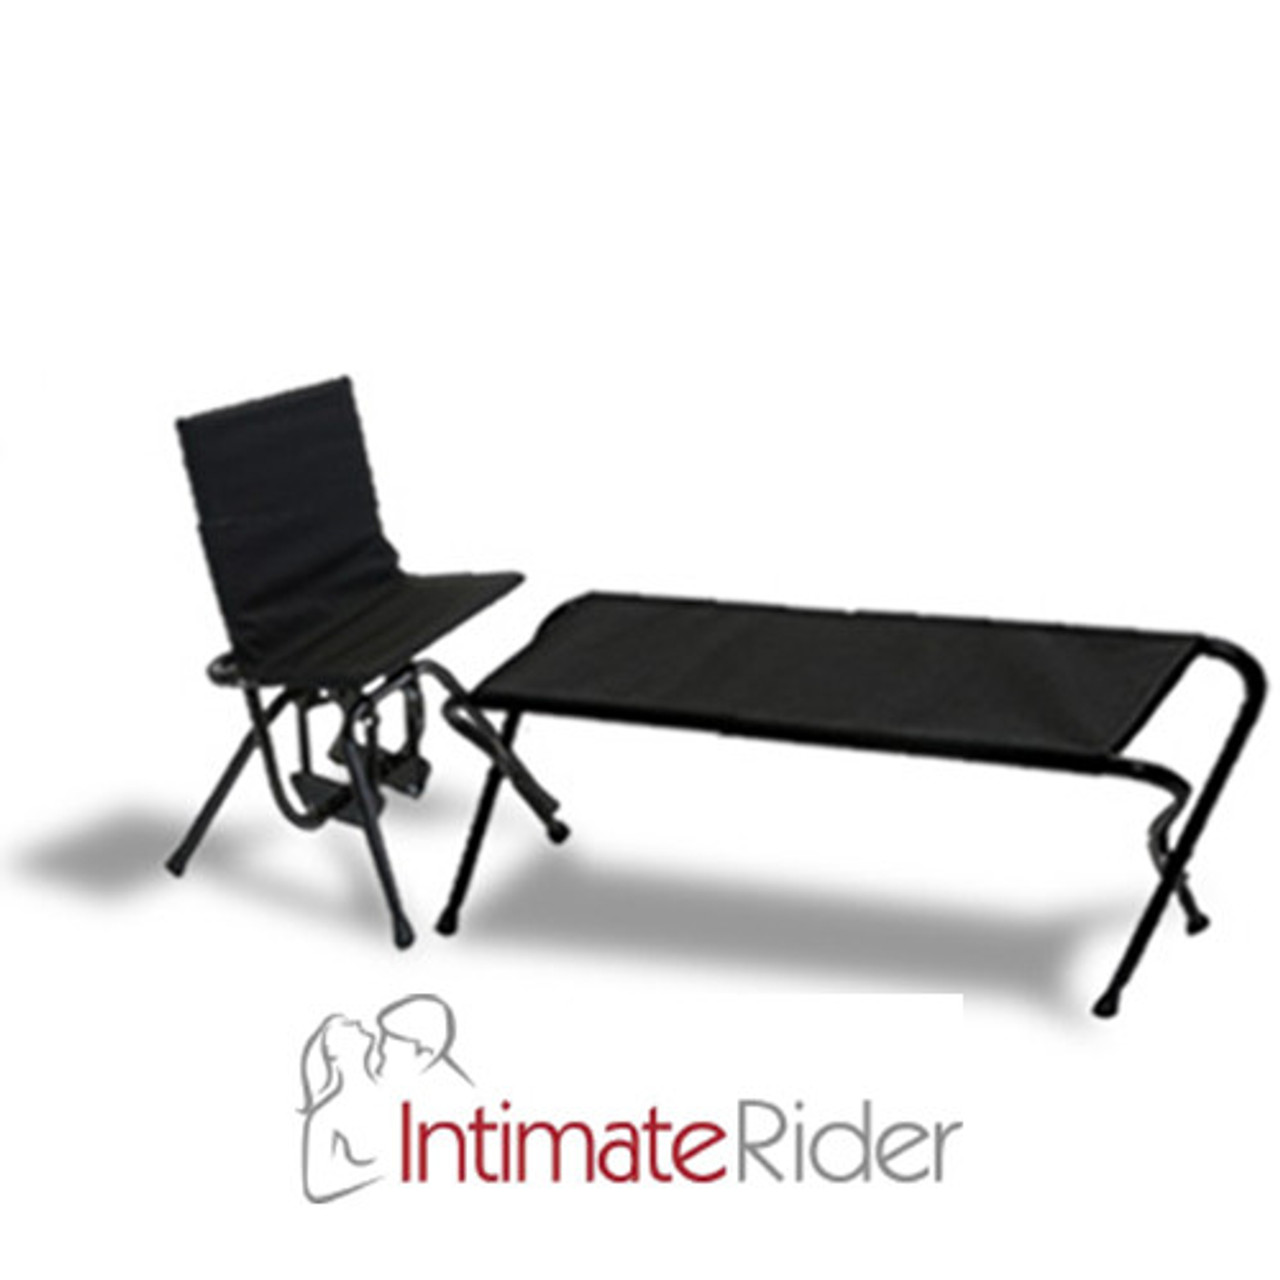 IntimateRider Sex Chair